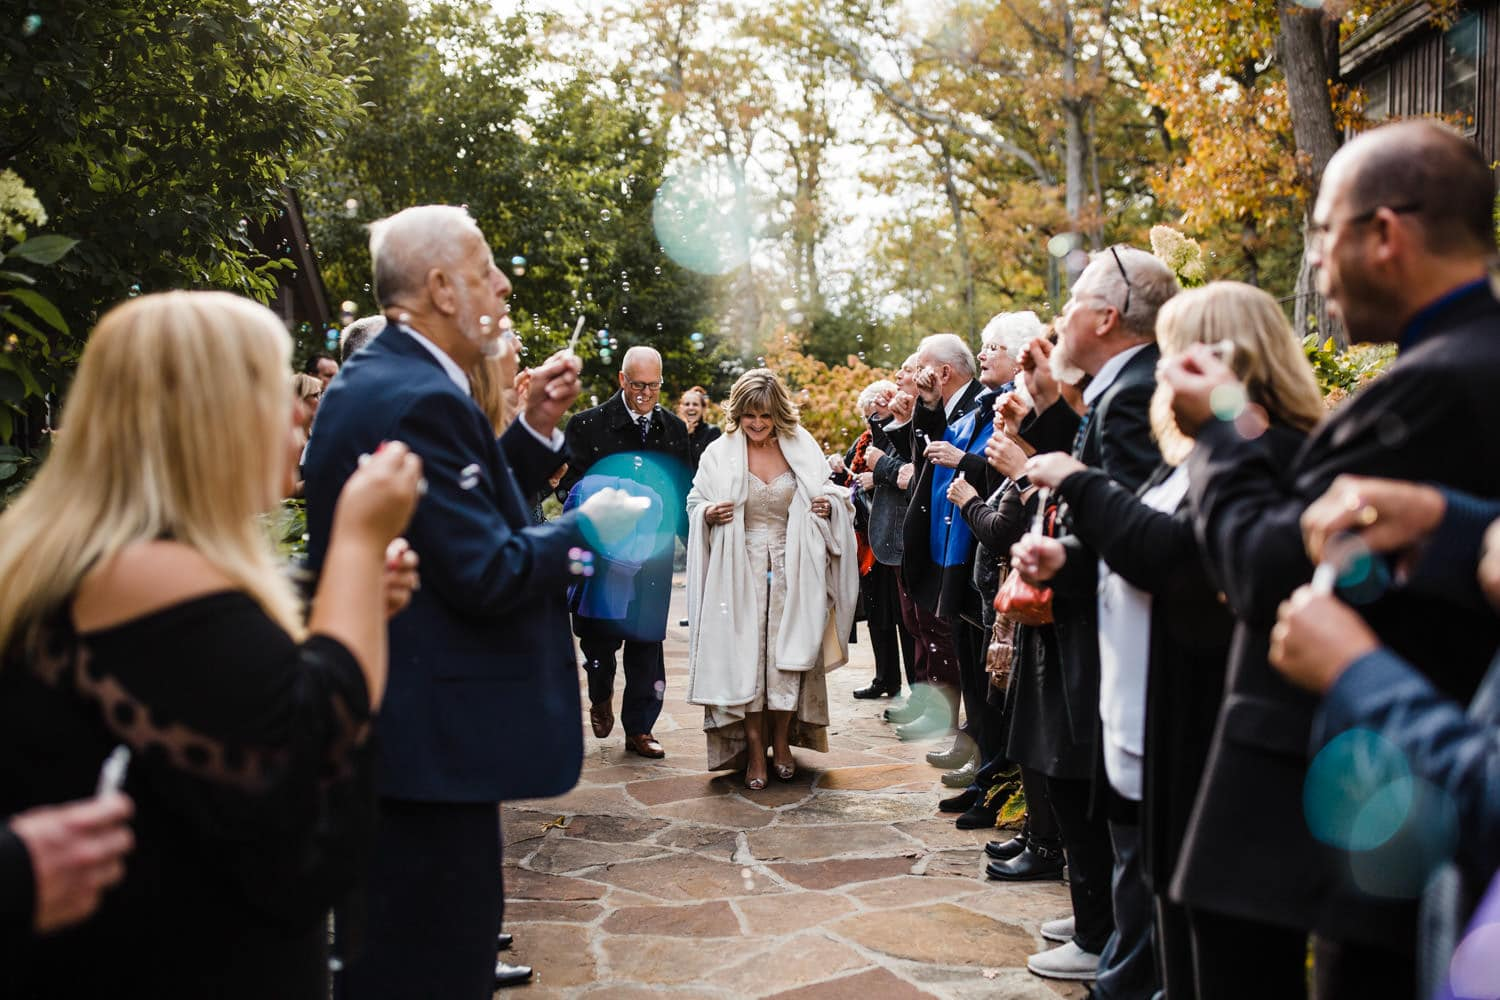 guests blow bubbles for couples wedding exit - the ivy lea club wedding